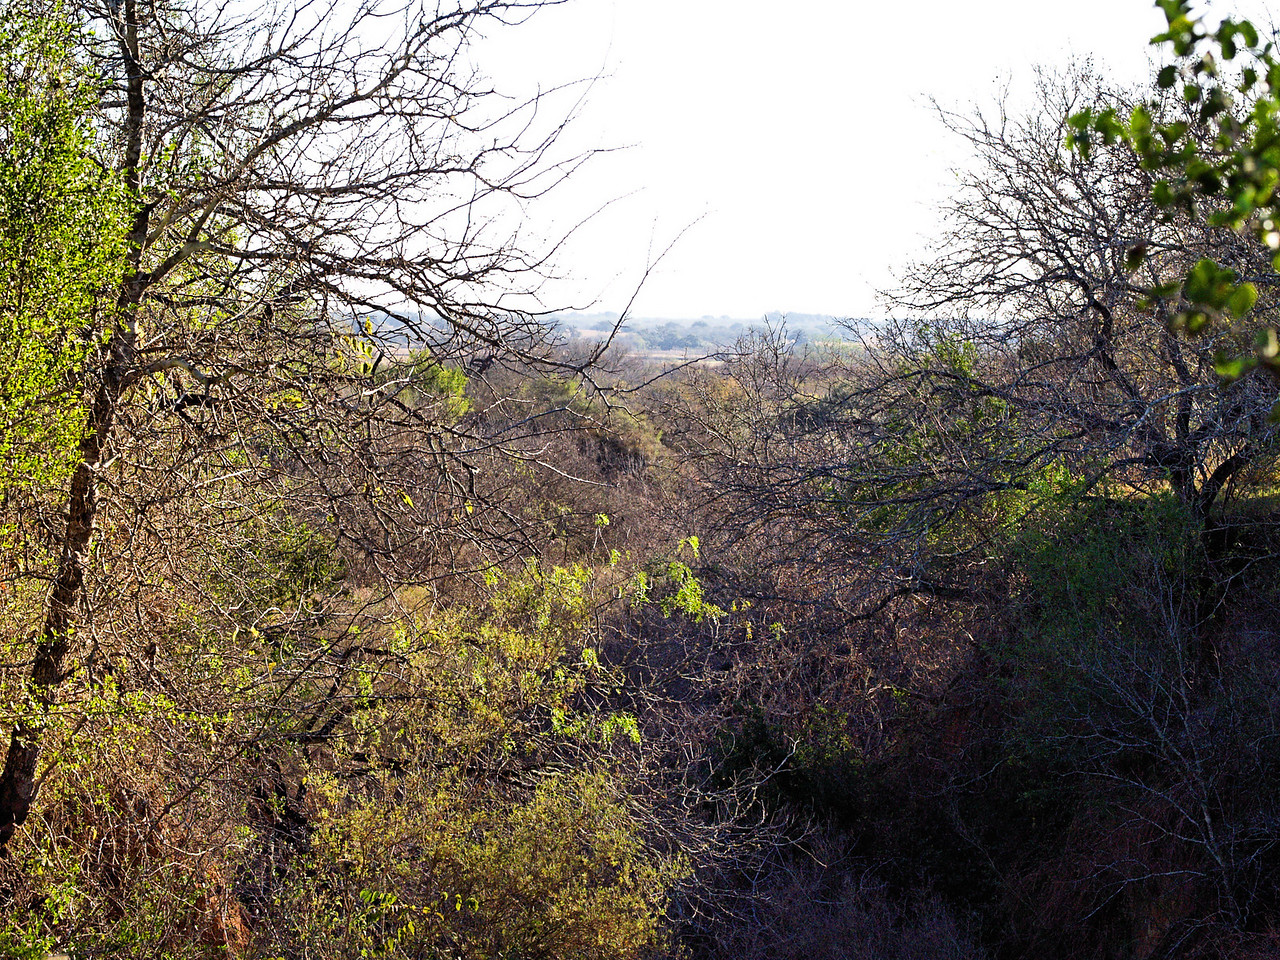 OLYMPUS DIGITAL CAMERA--Looking down into a ravine that has washed out, and grown up over the years.